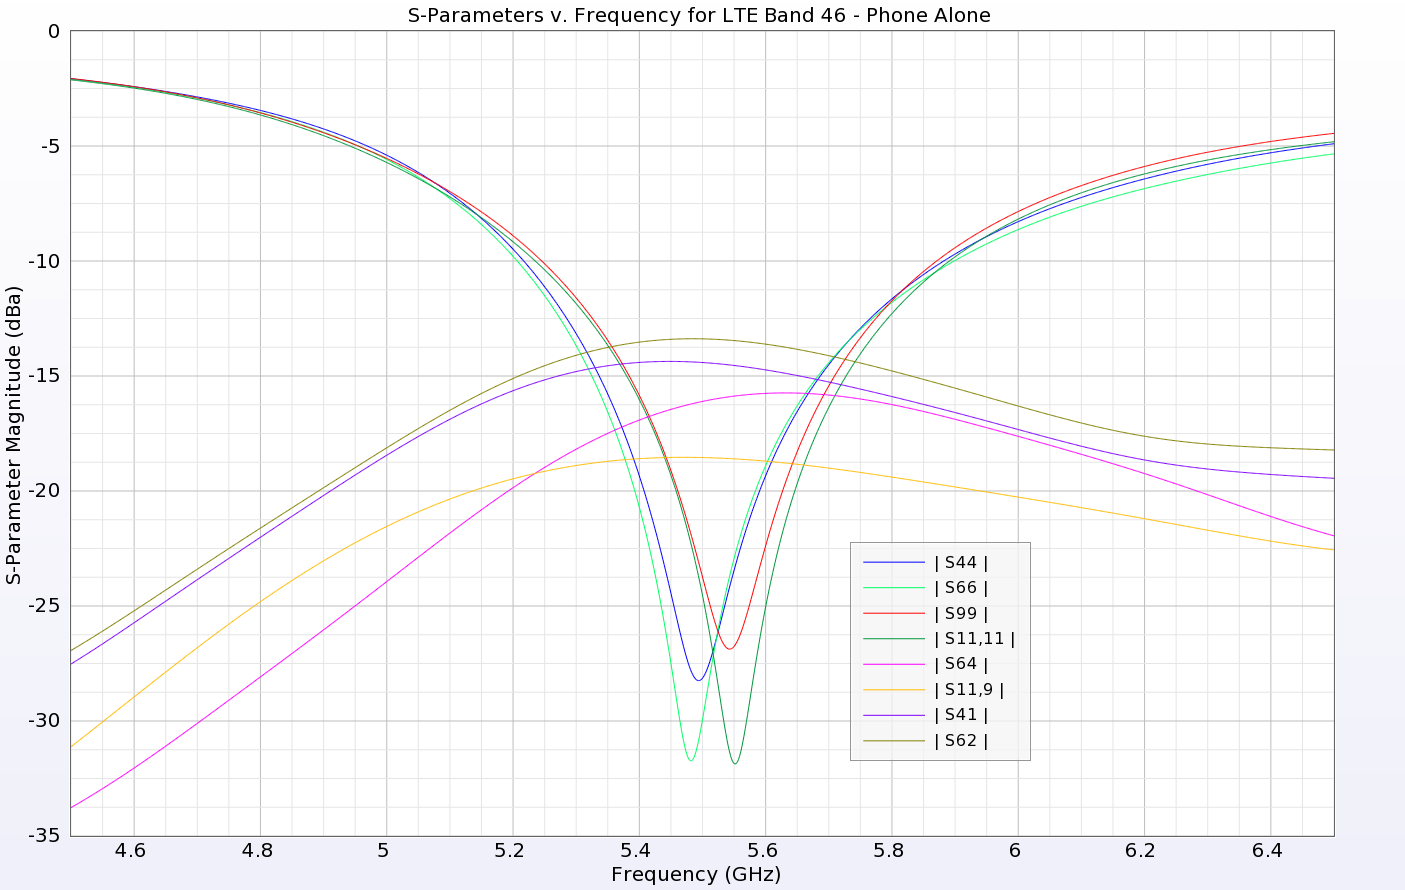 Figure 6: The return loss and isolation of select elements is shown for the higher band (LTE 46) with good results.